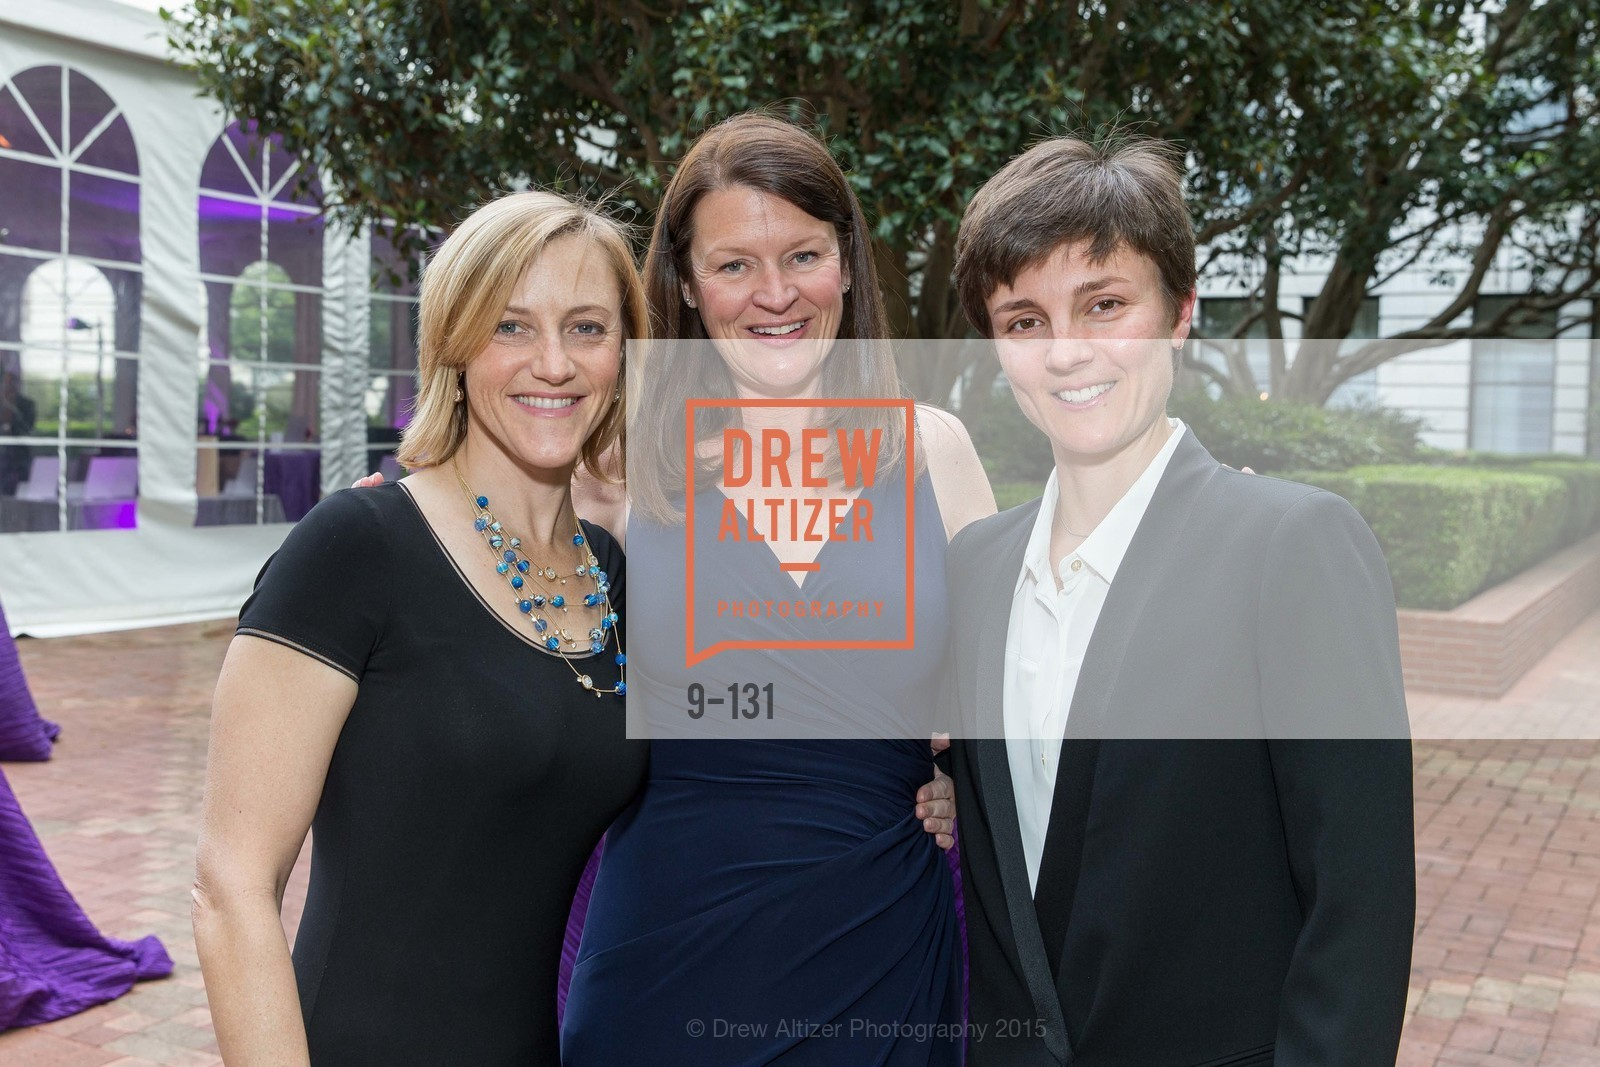 Emily Coles, Shelly Jensen, Katerina Blinova, JUVENILE DIABETES RESEARCH FOUNDATION  Hope Gala, The Ritz-Carlton, May 29th, 2015,Drew Altizer, Drew Altizer Photography, full-service agency, private events, San Francisco photographer, photographer california